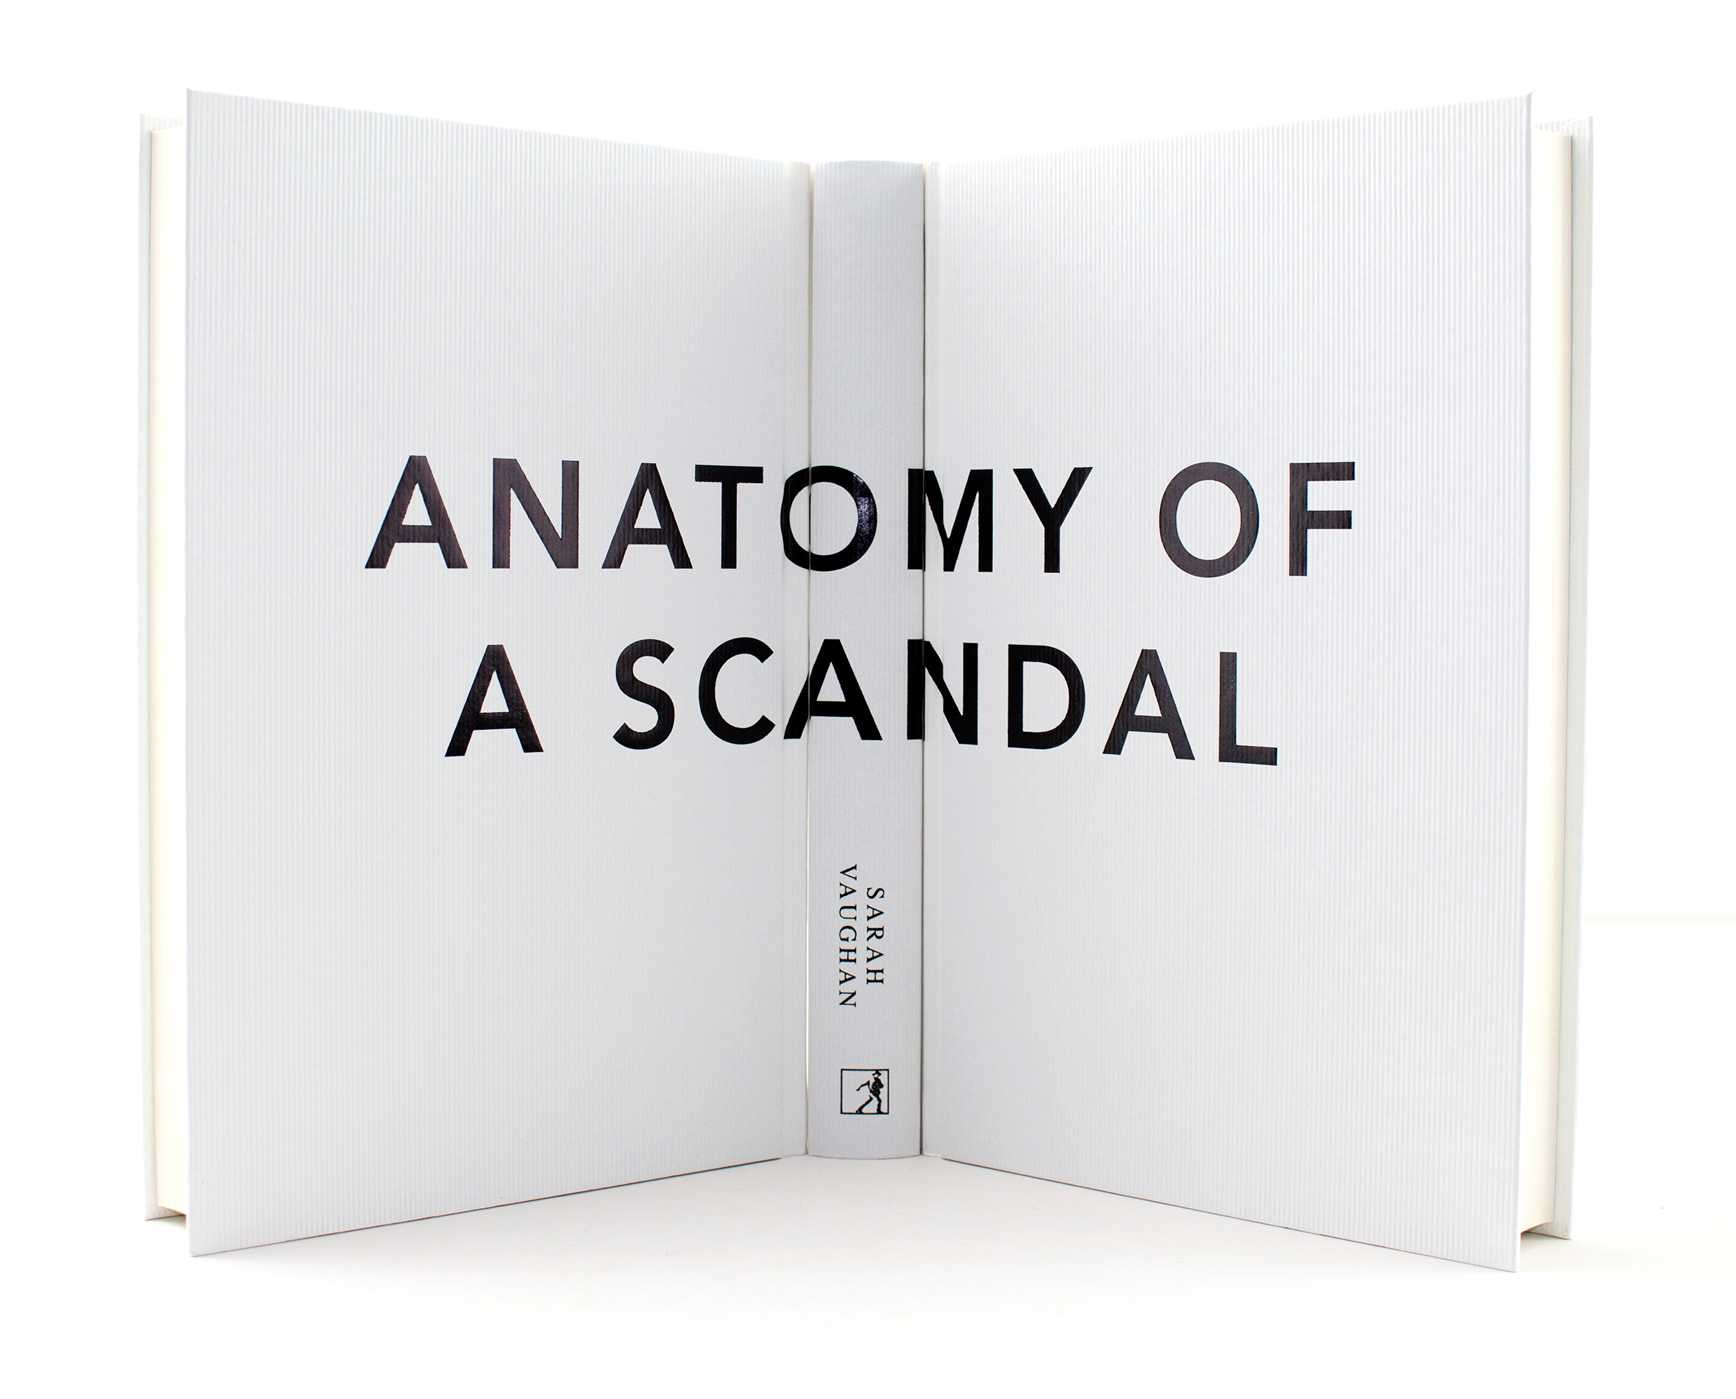 Anatomy of a scandal 9781471164996.in04